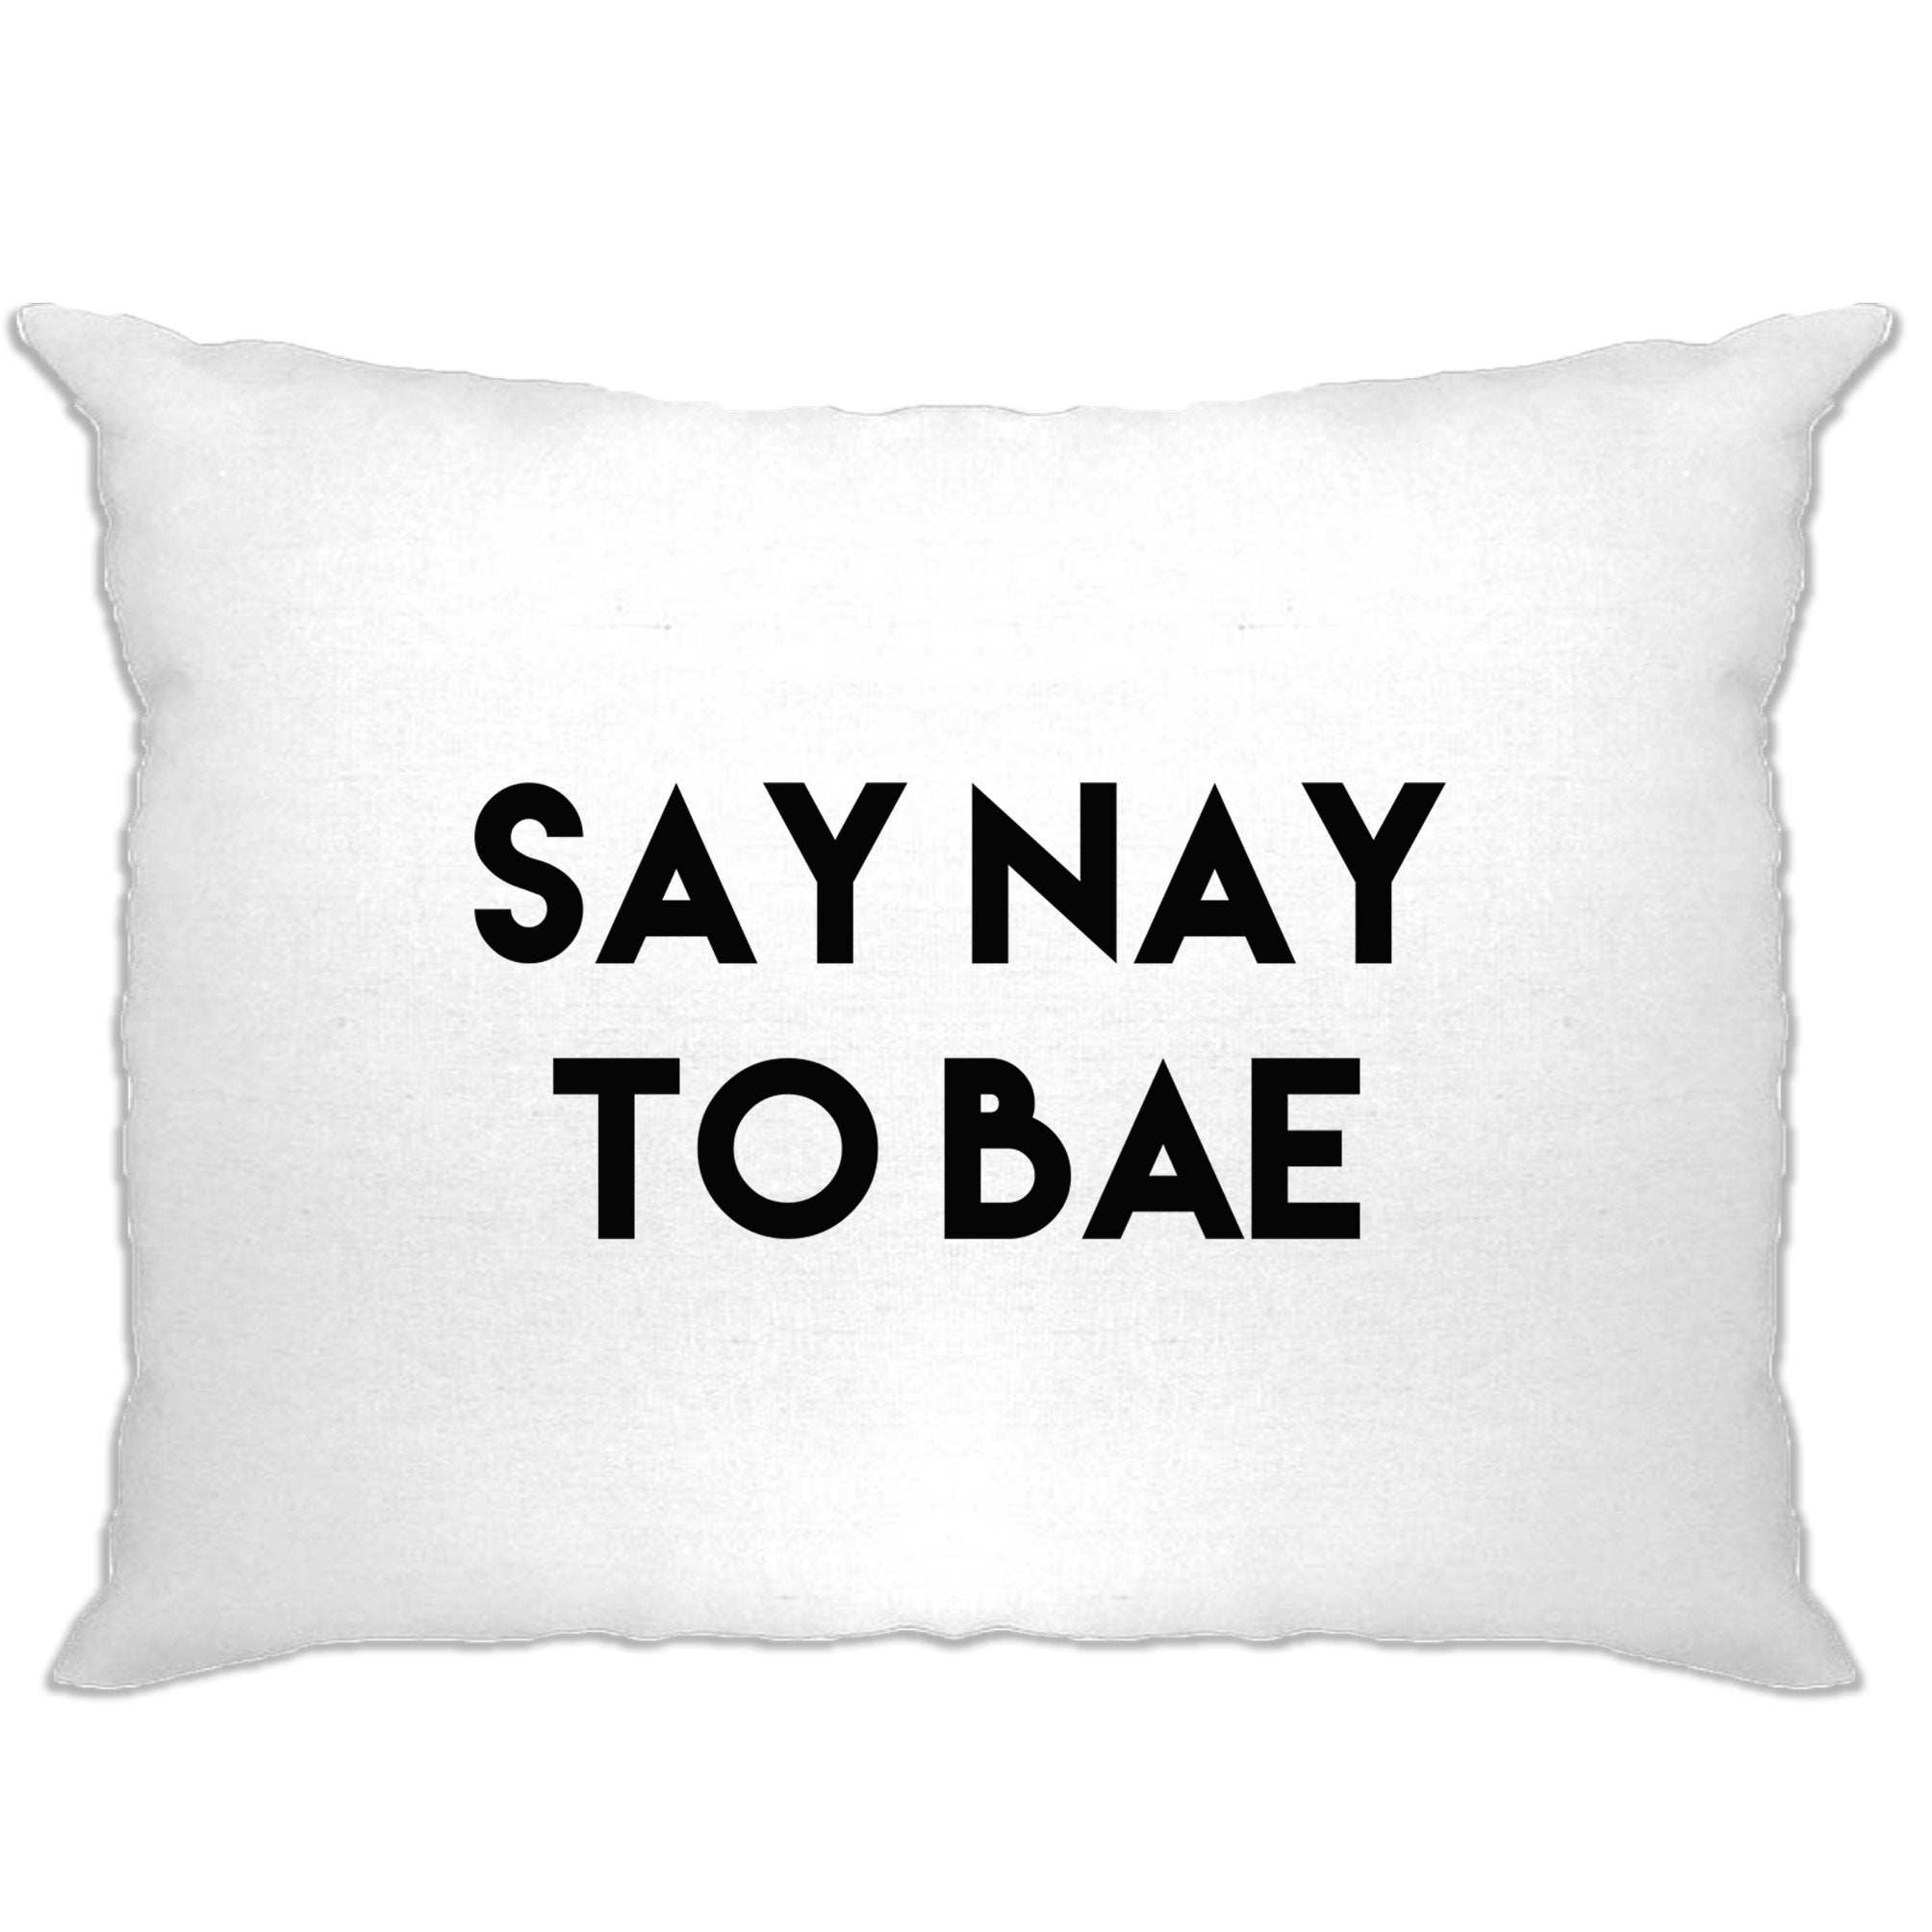 Relationship Pillow Case Say Nay To Bae Novelty Slogan